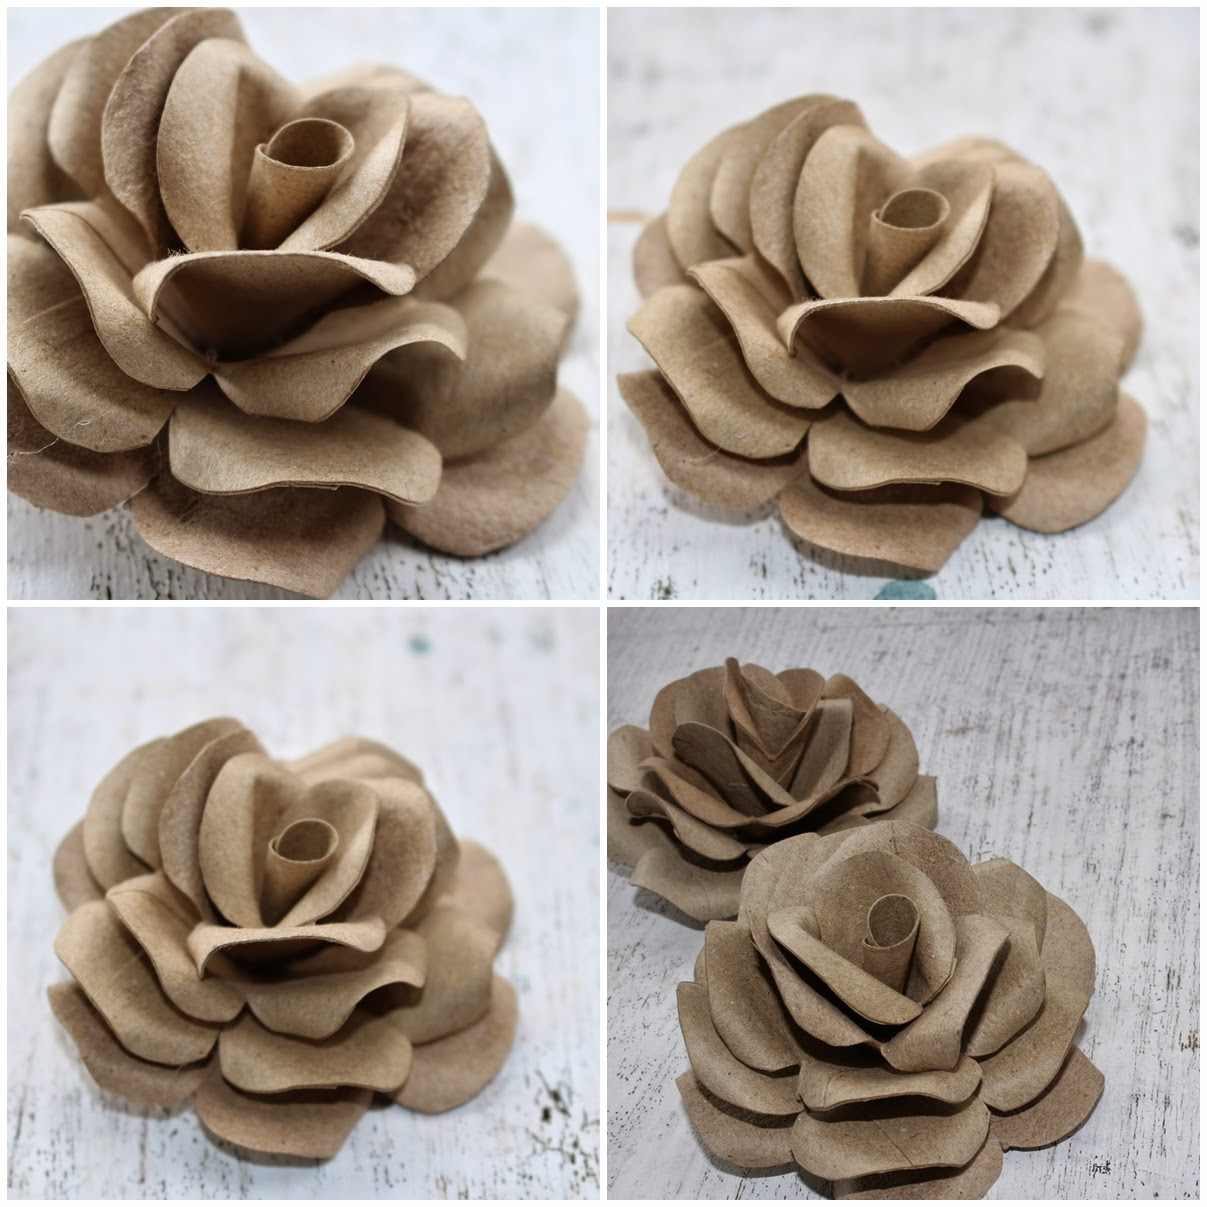 Diy how to make roses using empty toilet tissue tubes reduce click photos to enlarge mightylinksfo Choice Image